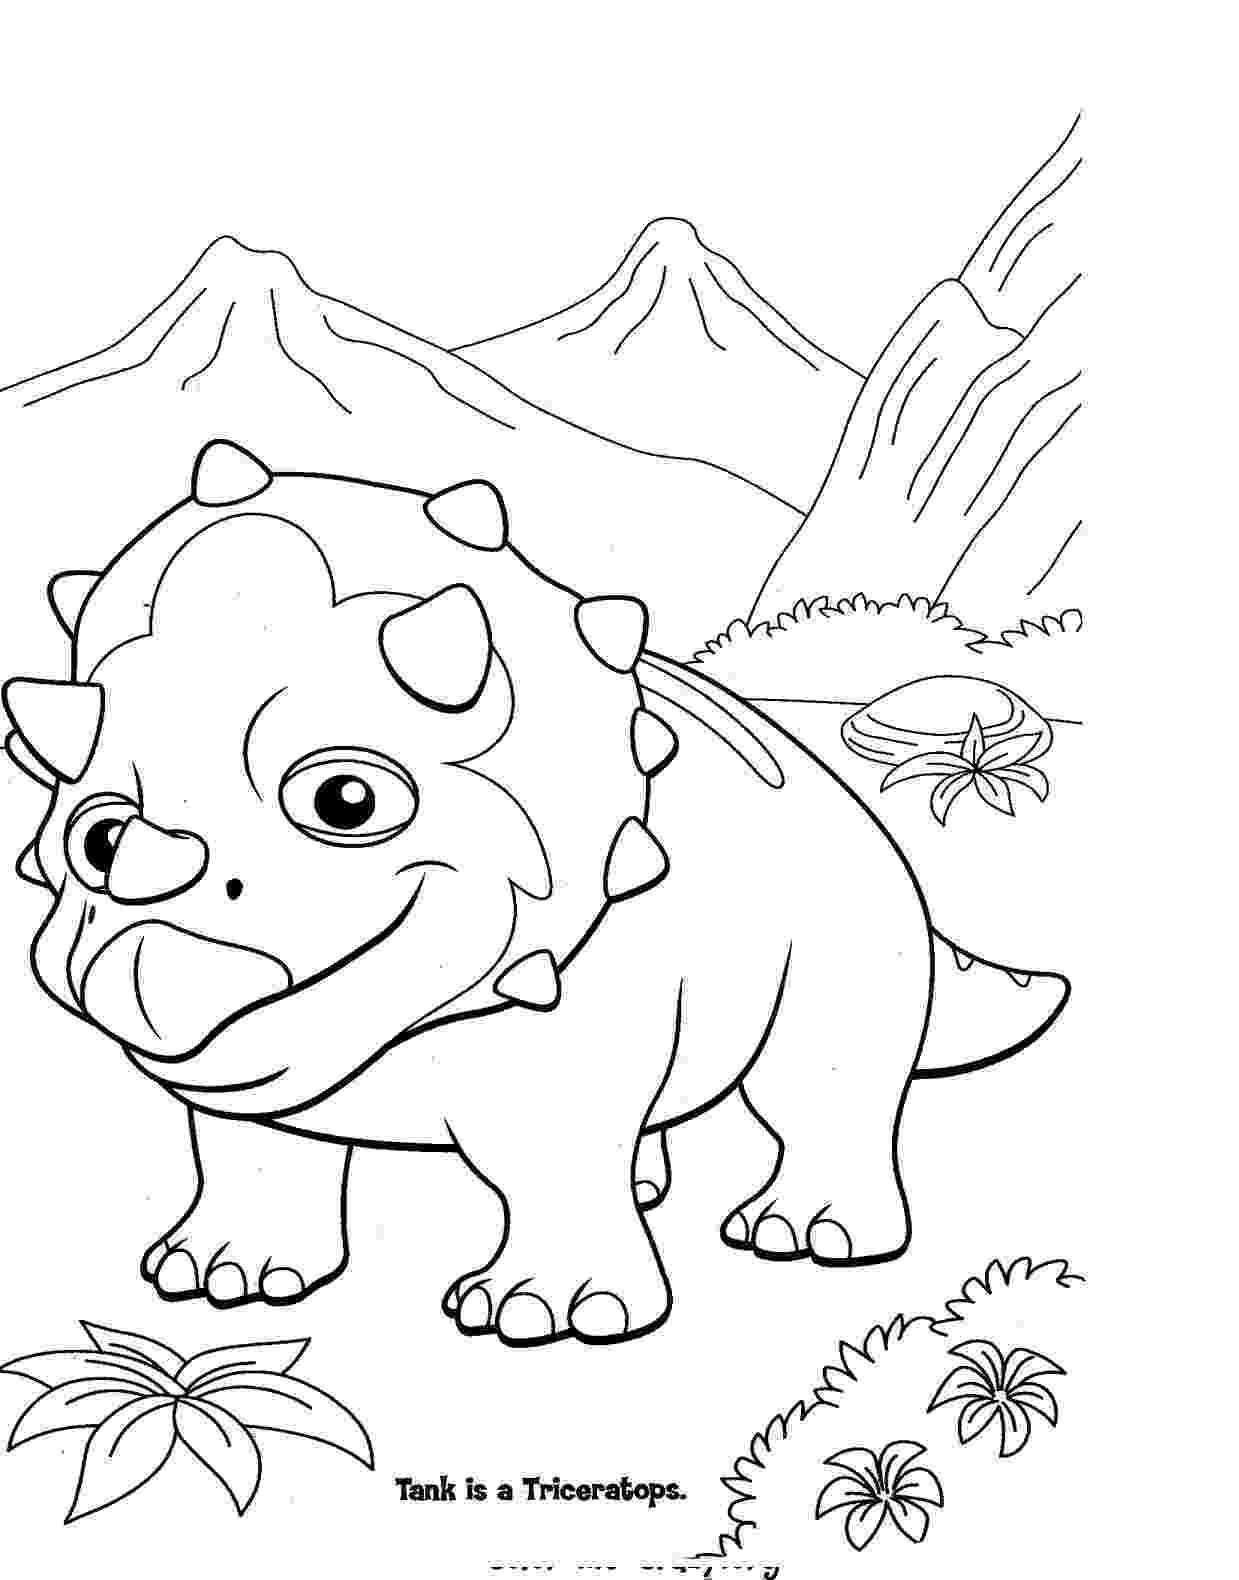 dinosaurs colouring pictures to print printable dinosaur coloring pages for kids cool2bkids print pictures colouring dinosaurs to